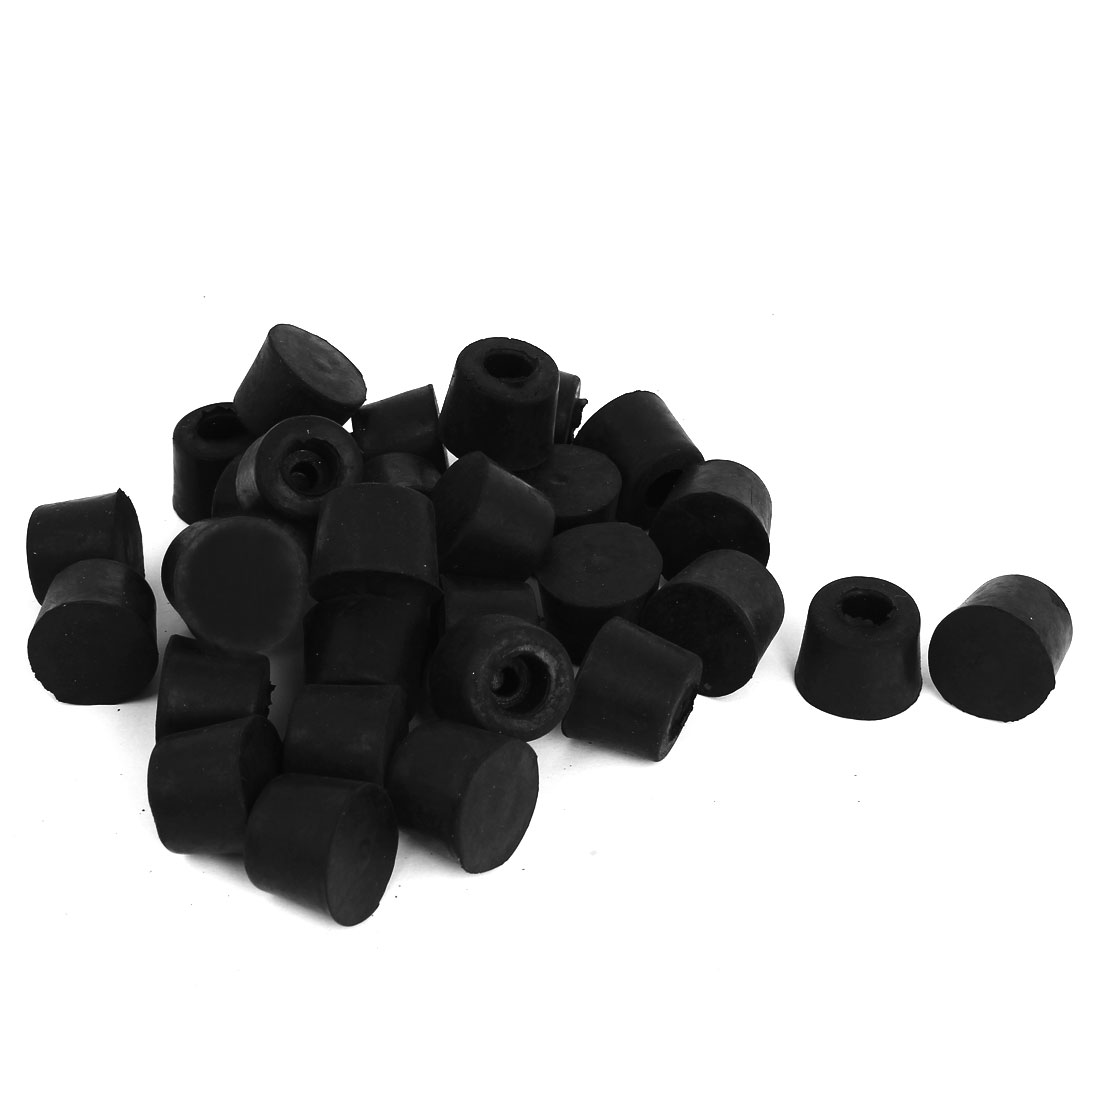 10mm Hole Dia Rubber Chair Table Foot Leg Cover Holder Pads 50 Pcs